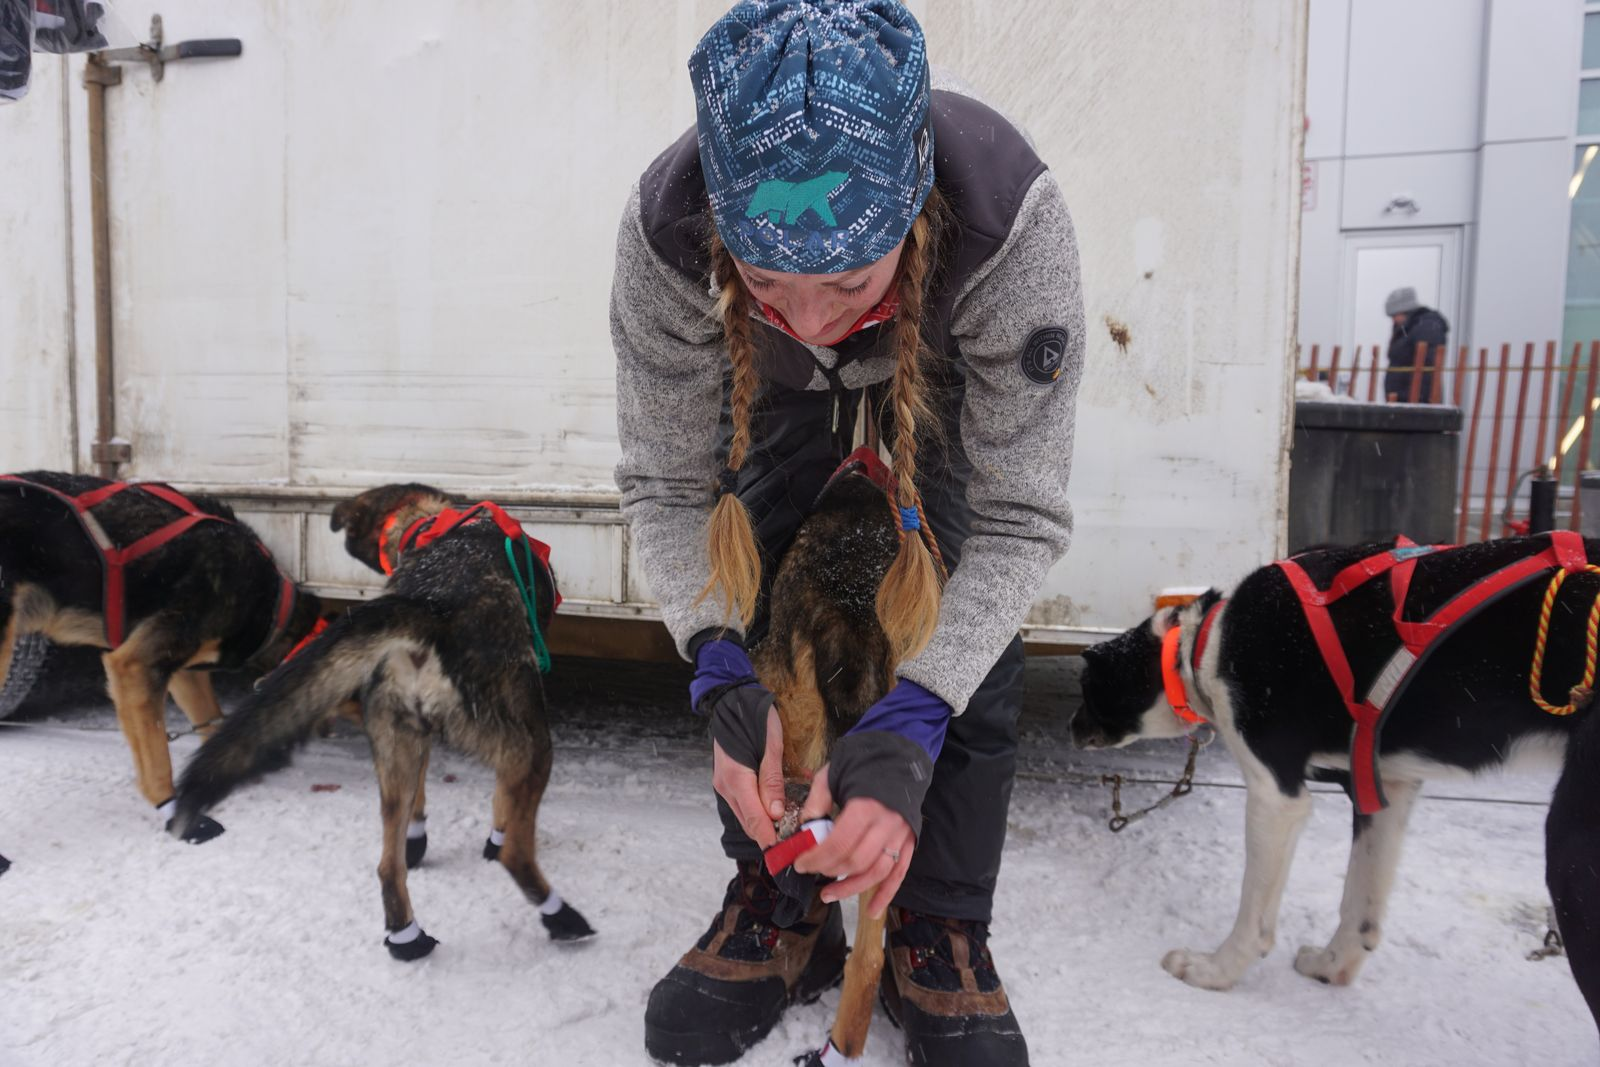 Musher Kristy Berington puts booties onto the feet of one of her team's dogs at the Anchorage ceremonial start of the 2020 Iditarod Trail Sled Dog Race